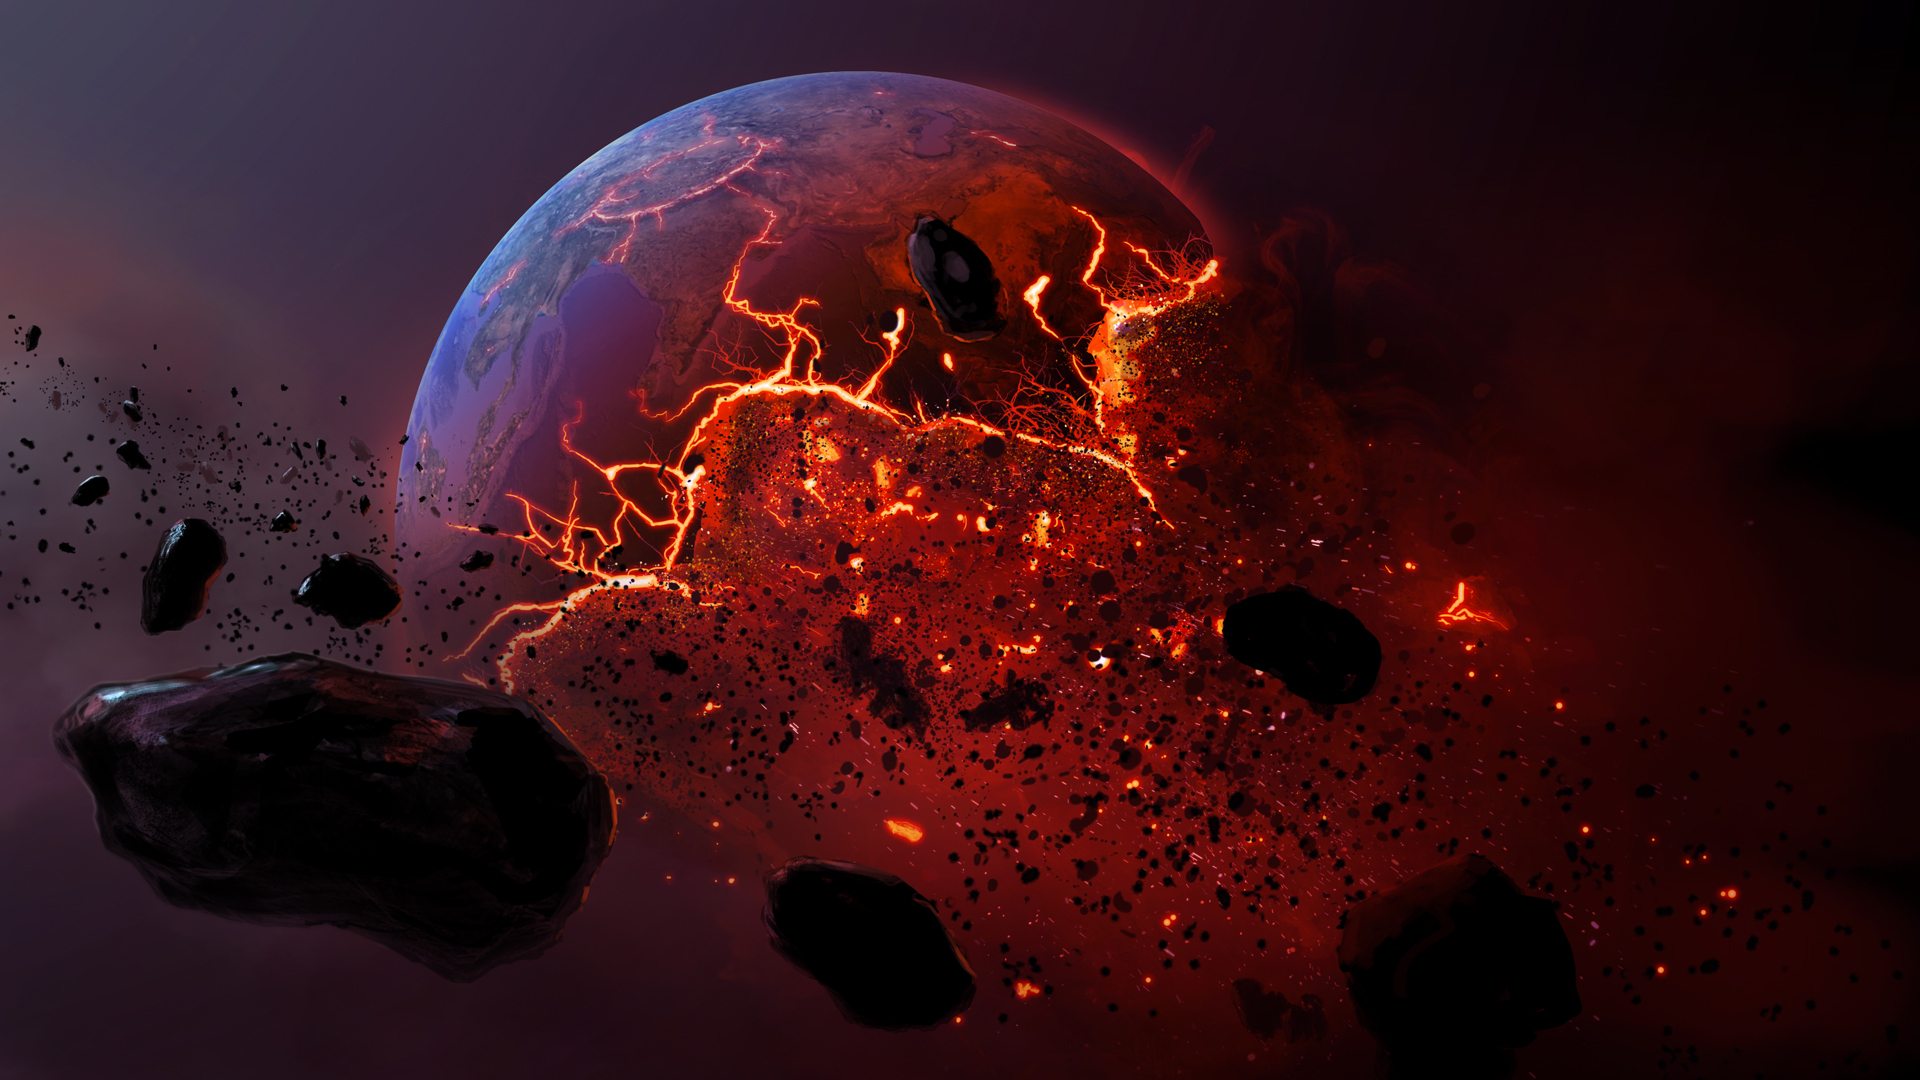 Meteor Space Earth Meteorite Fall Hd Wallpapers x Recipes